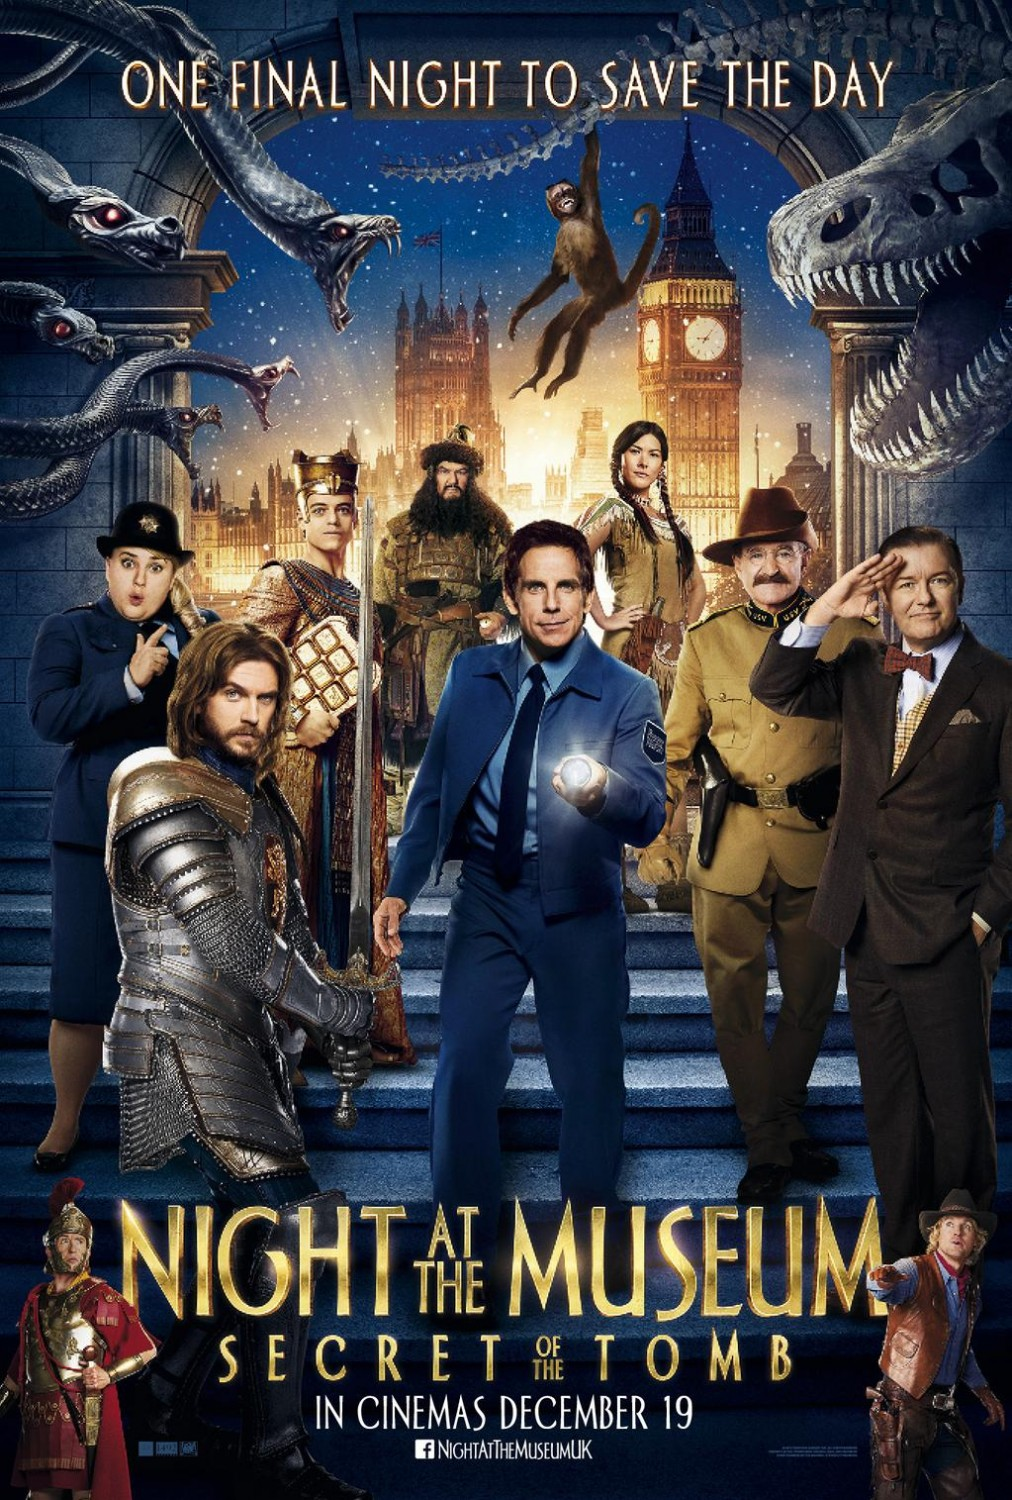 Night at the Museum Secret of the Tomb-Official Poster-17NOVEMBRO2014-10